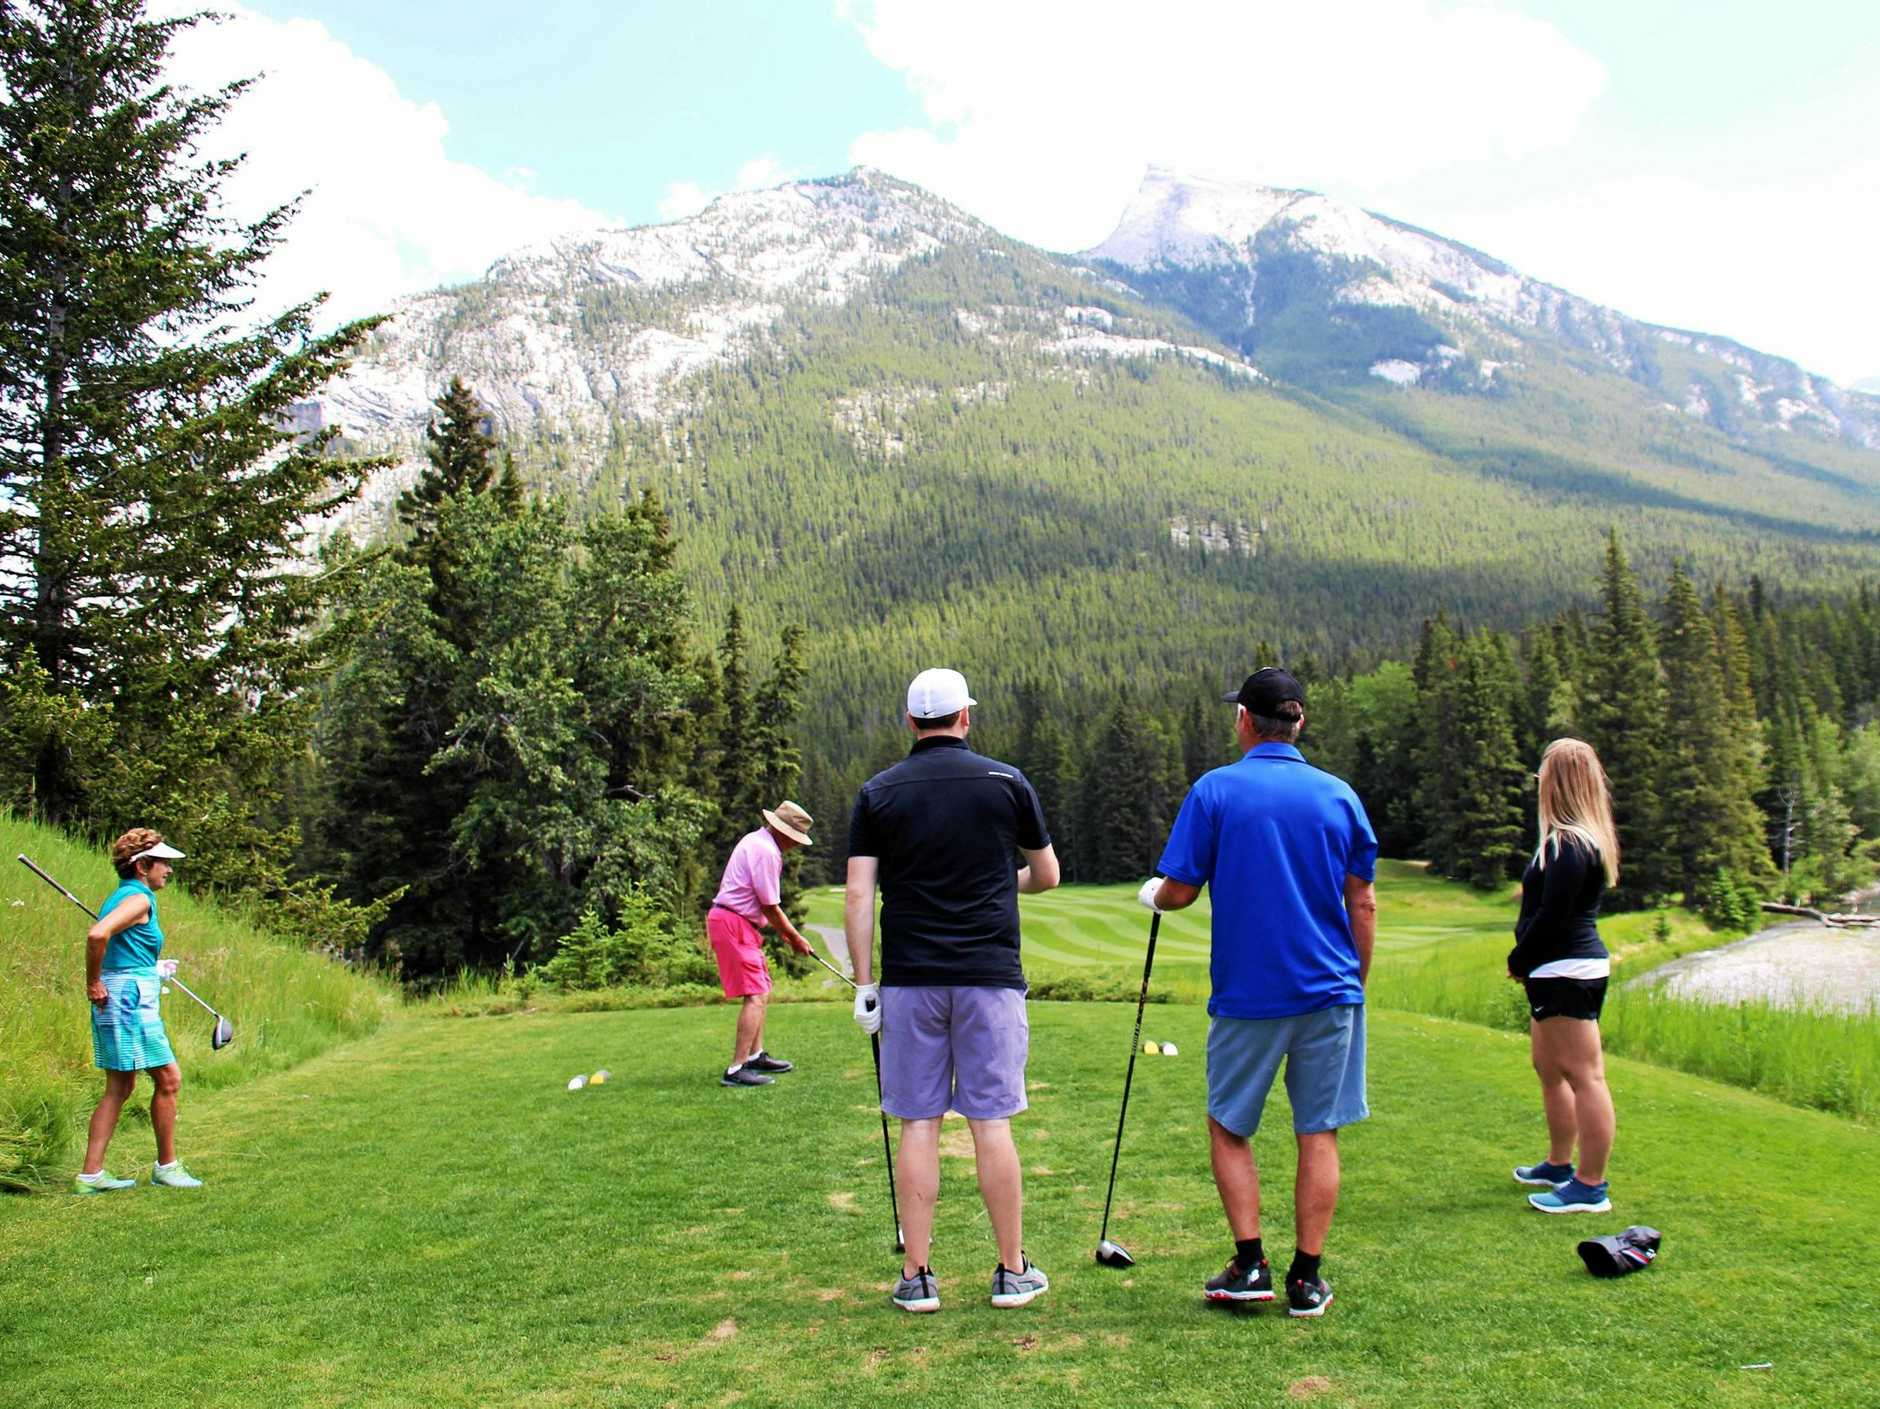 The 15th hole at Banff Springs Golf Course, called Spray.